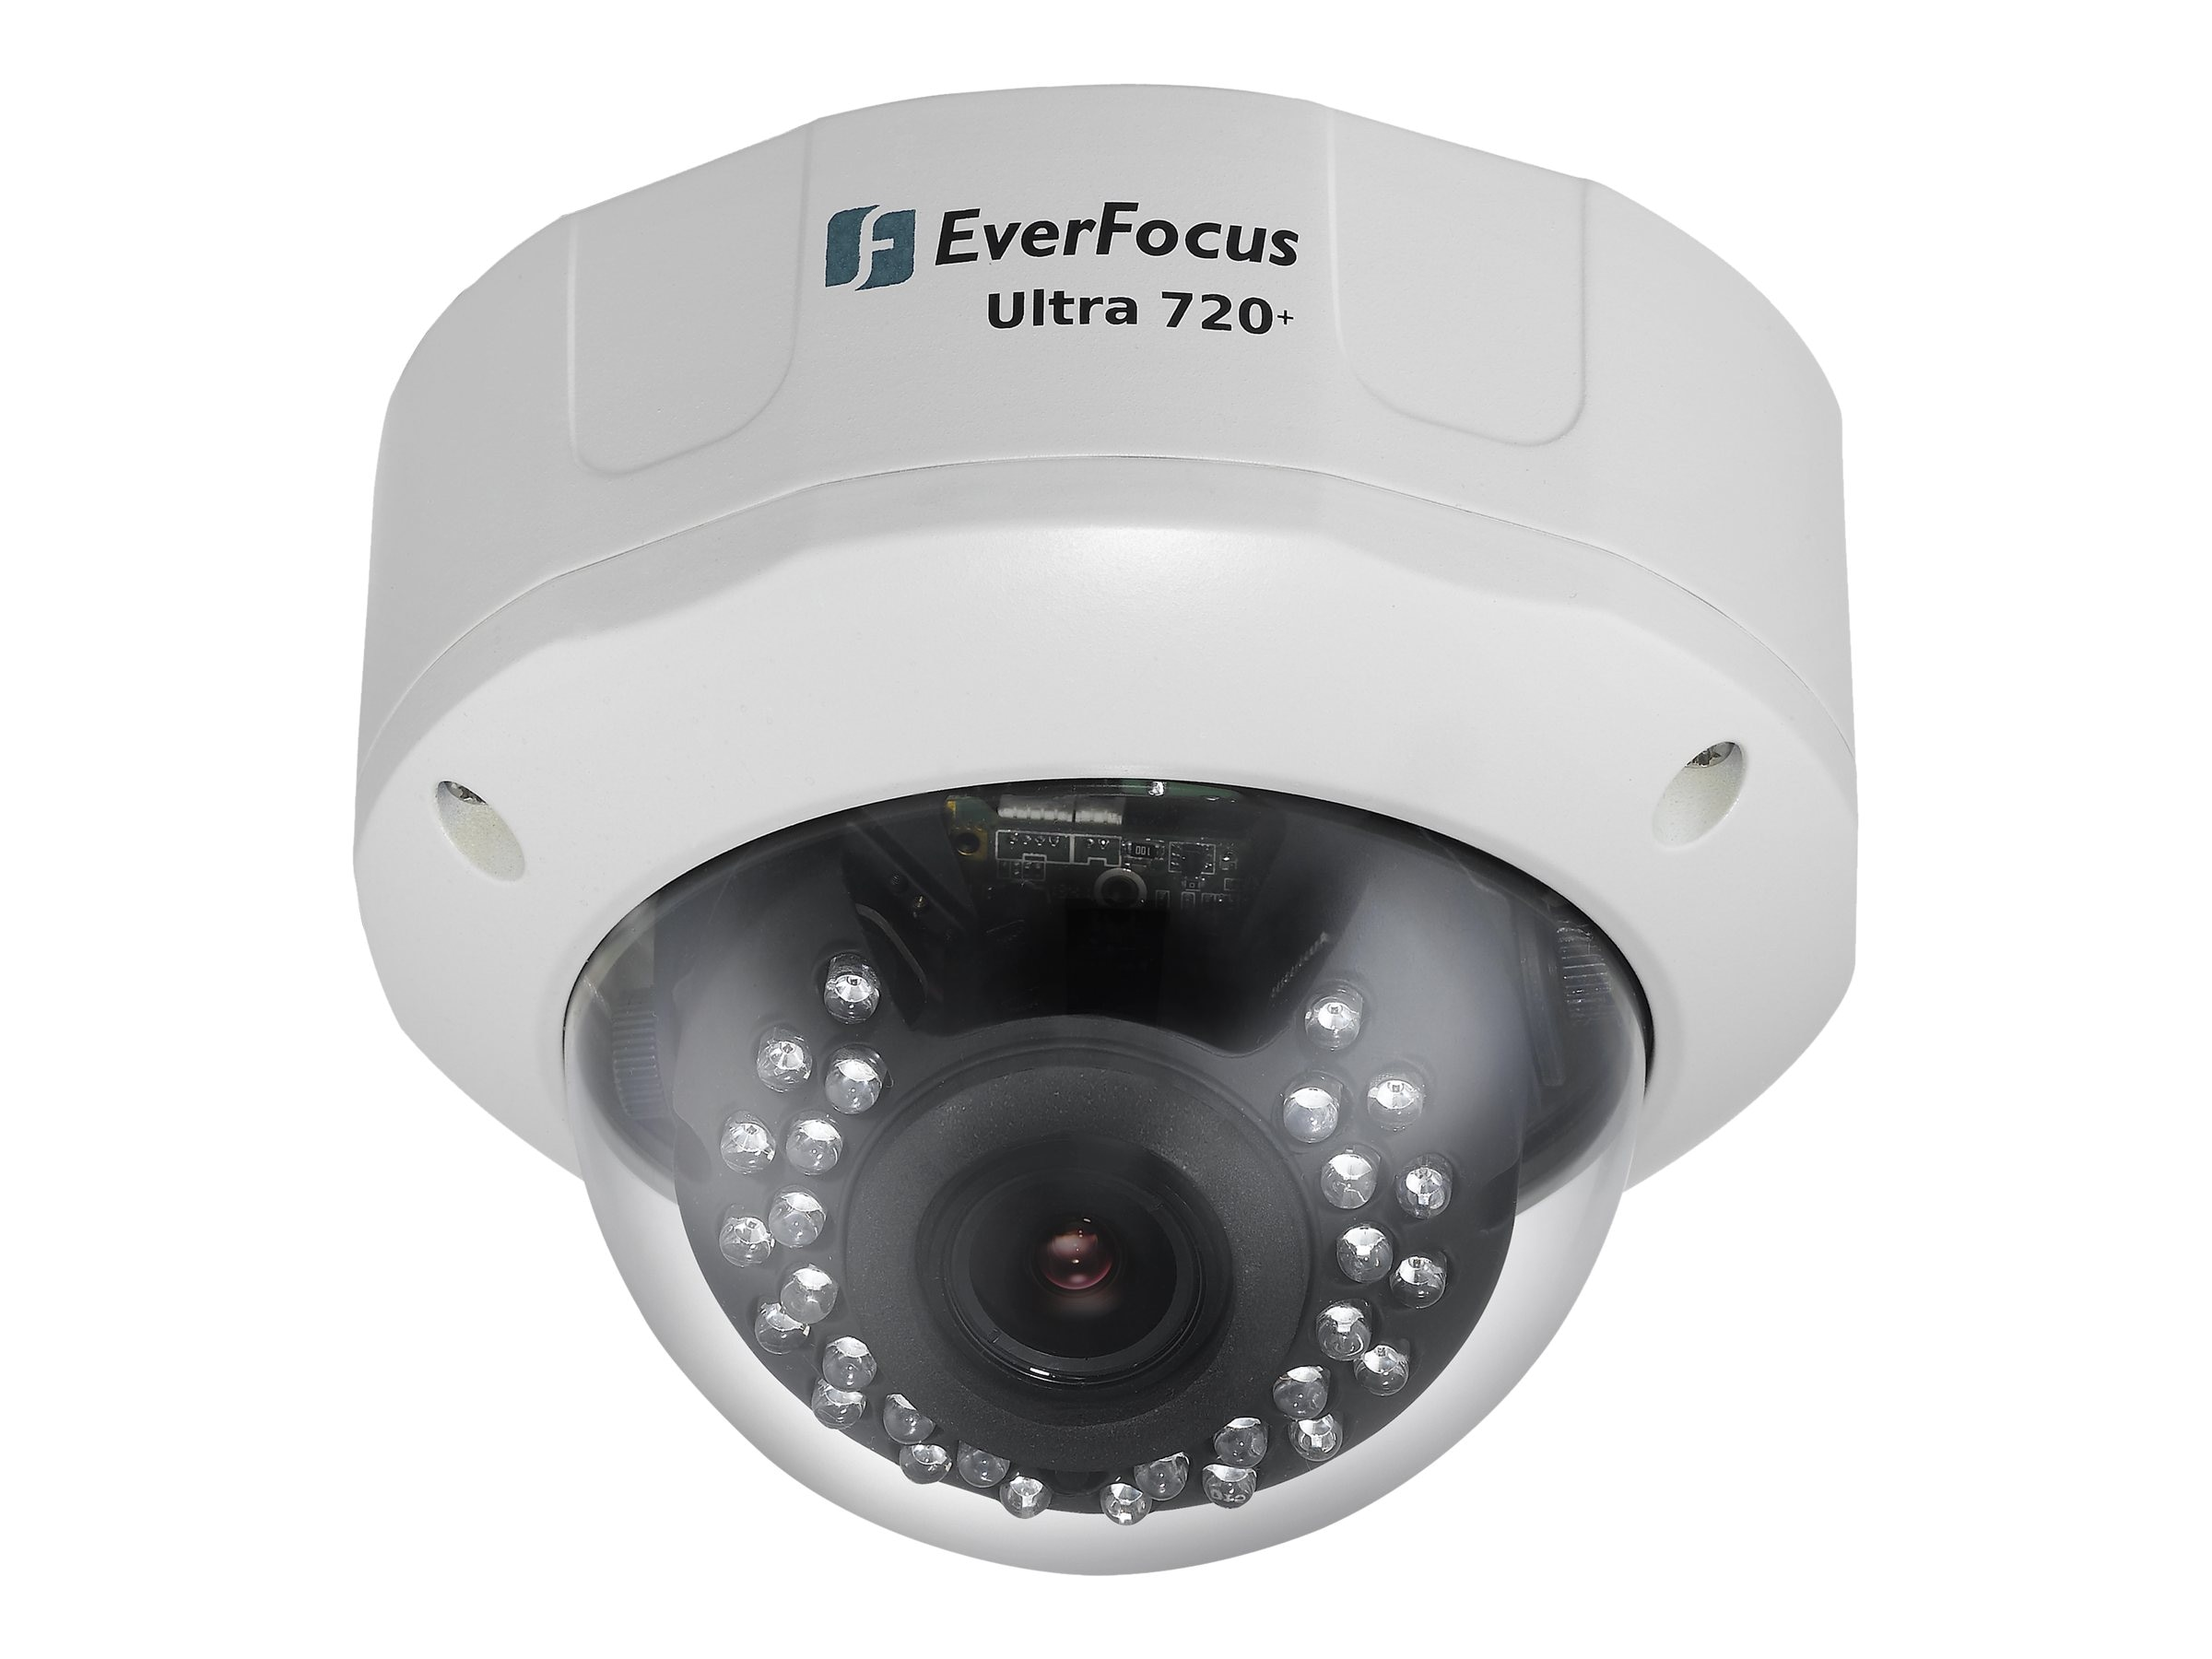 Everfocus EHD730 Outdoor True Day Night Camera with Dwdr IR Dome, EHD730, 14929671, Cameras - Security